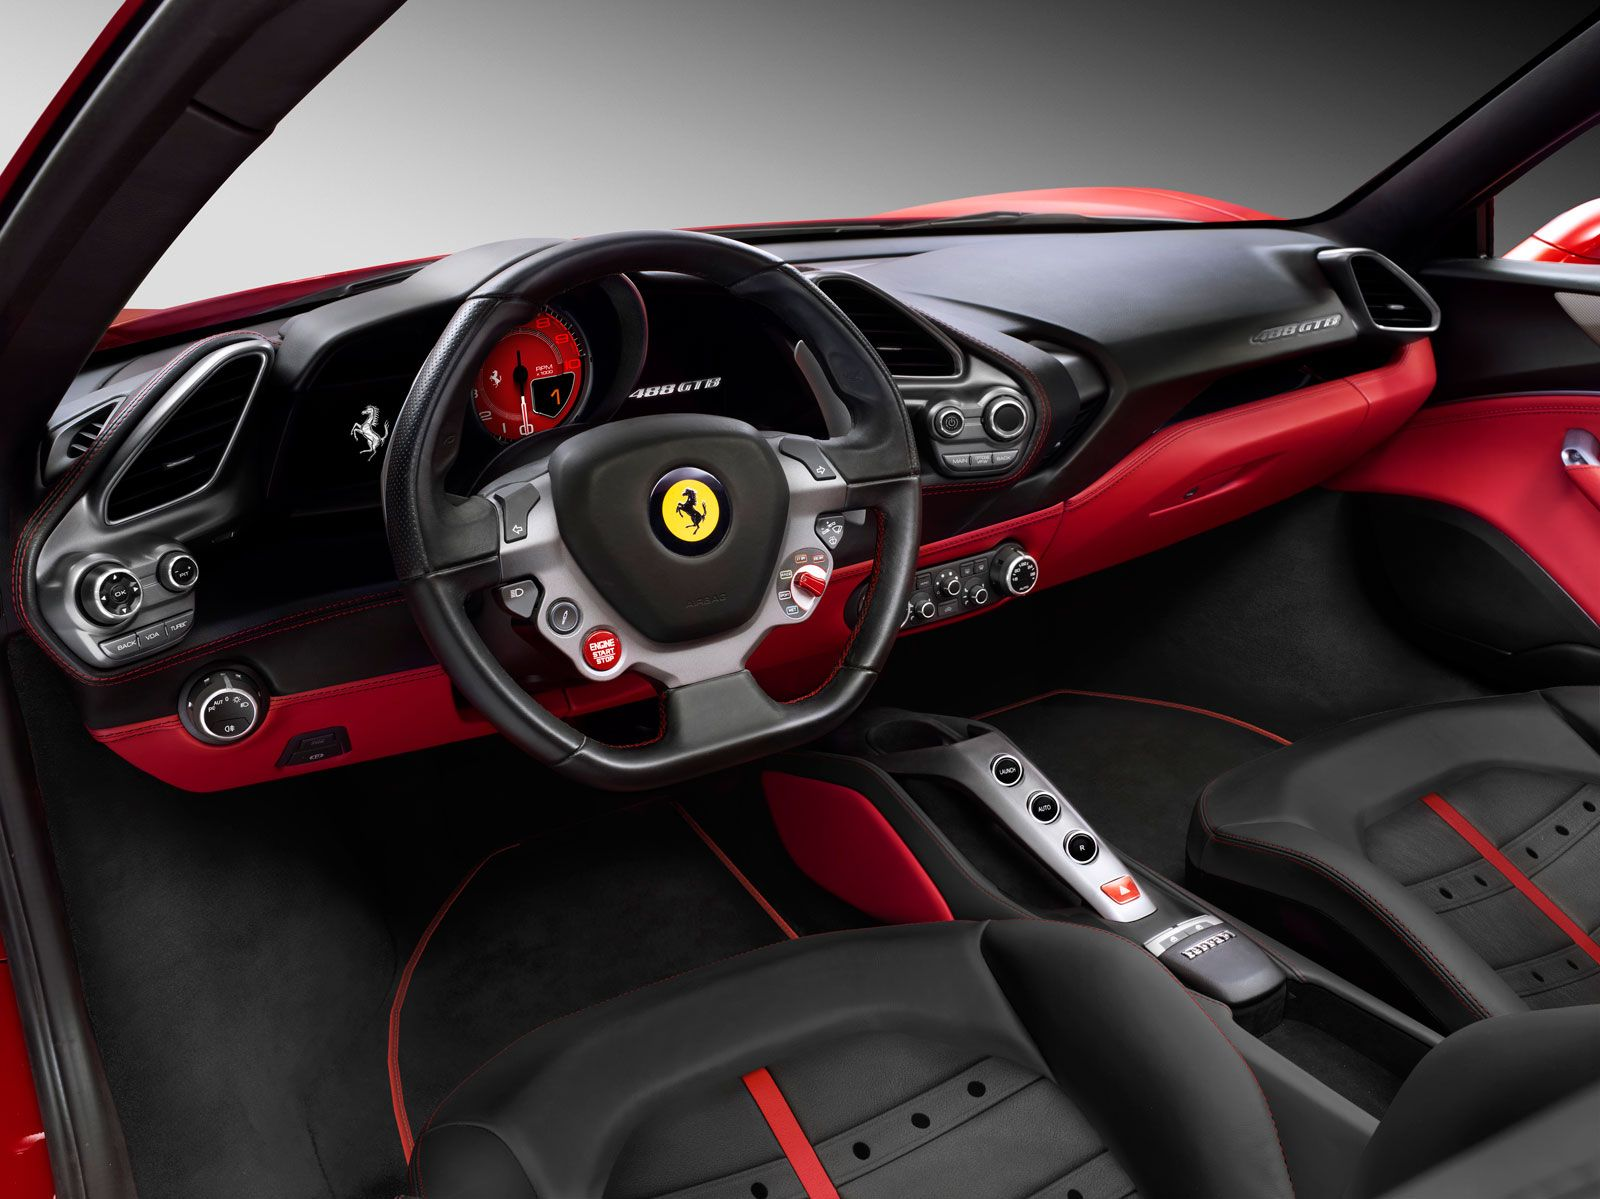 Ferrari 488 Gtb Interior With Images Ferrari Car 488 Gtb